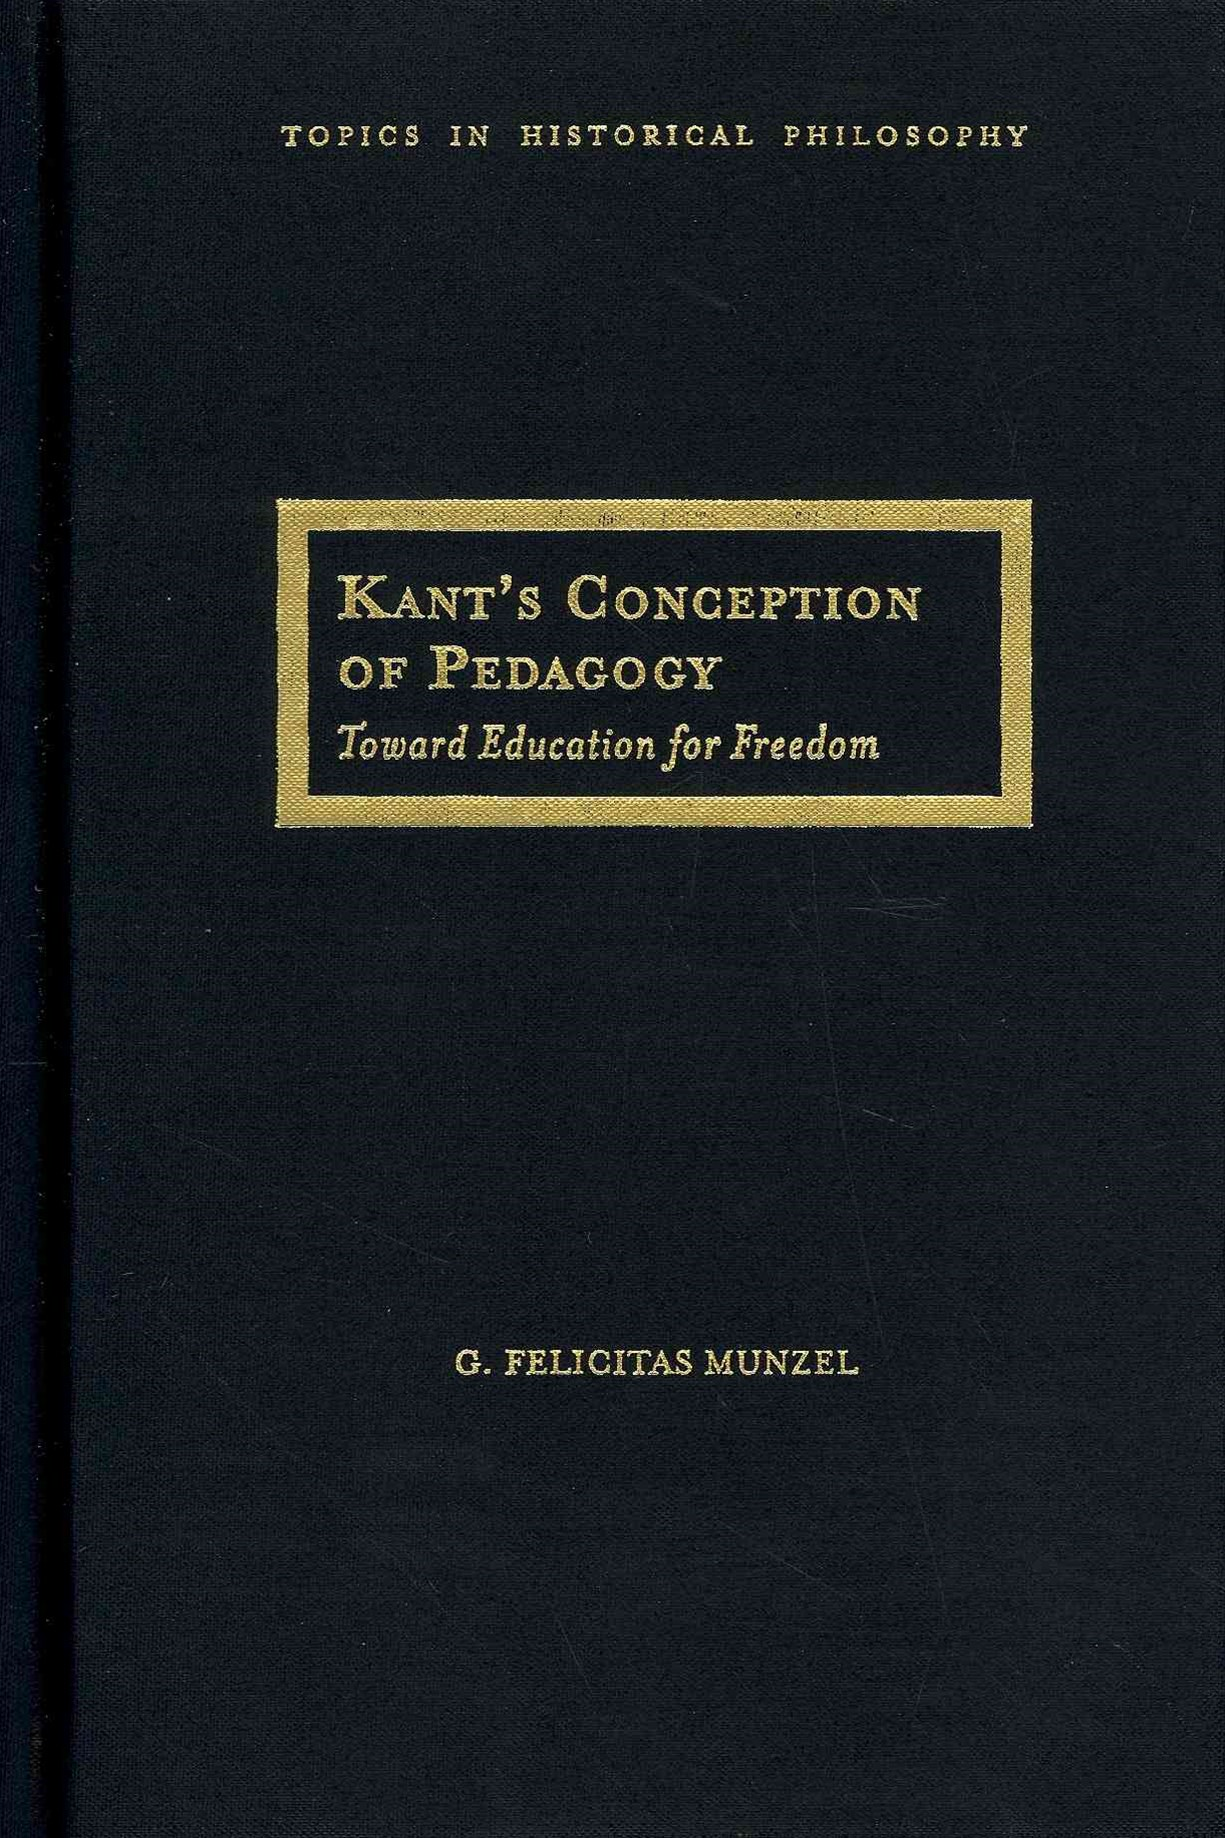 Kant's Conception of Pedagogy